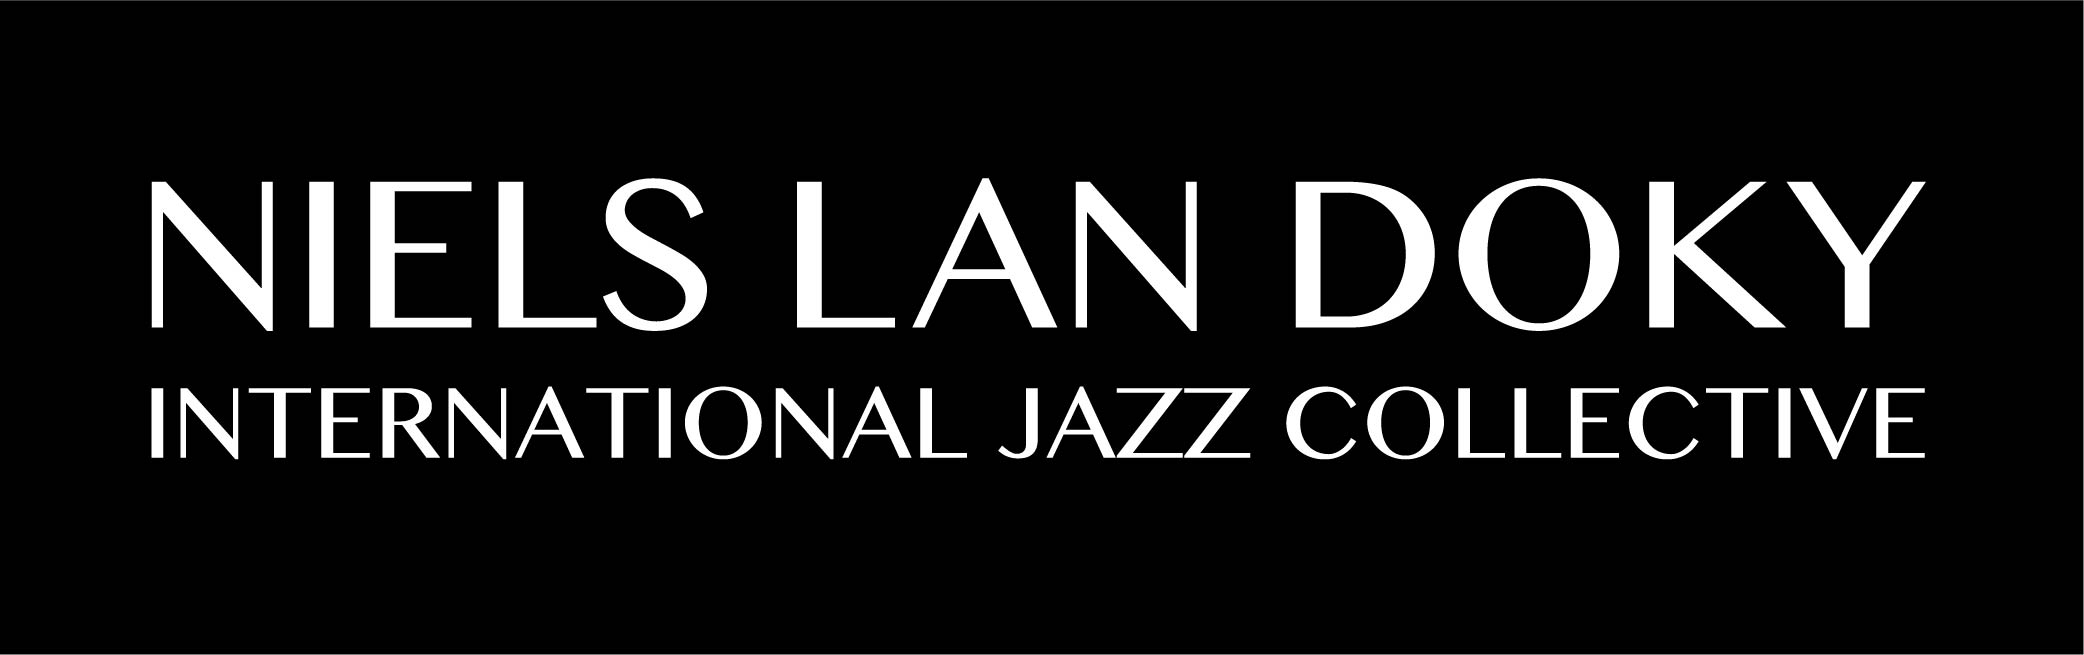 Niels Lan Doky International Jazz Collective